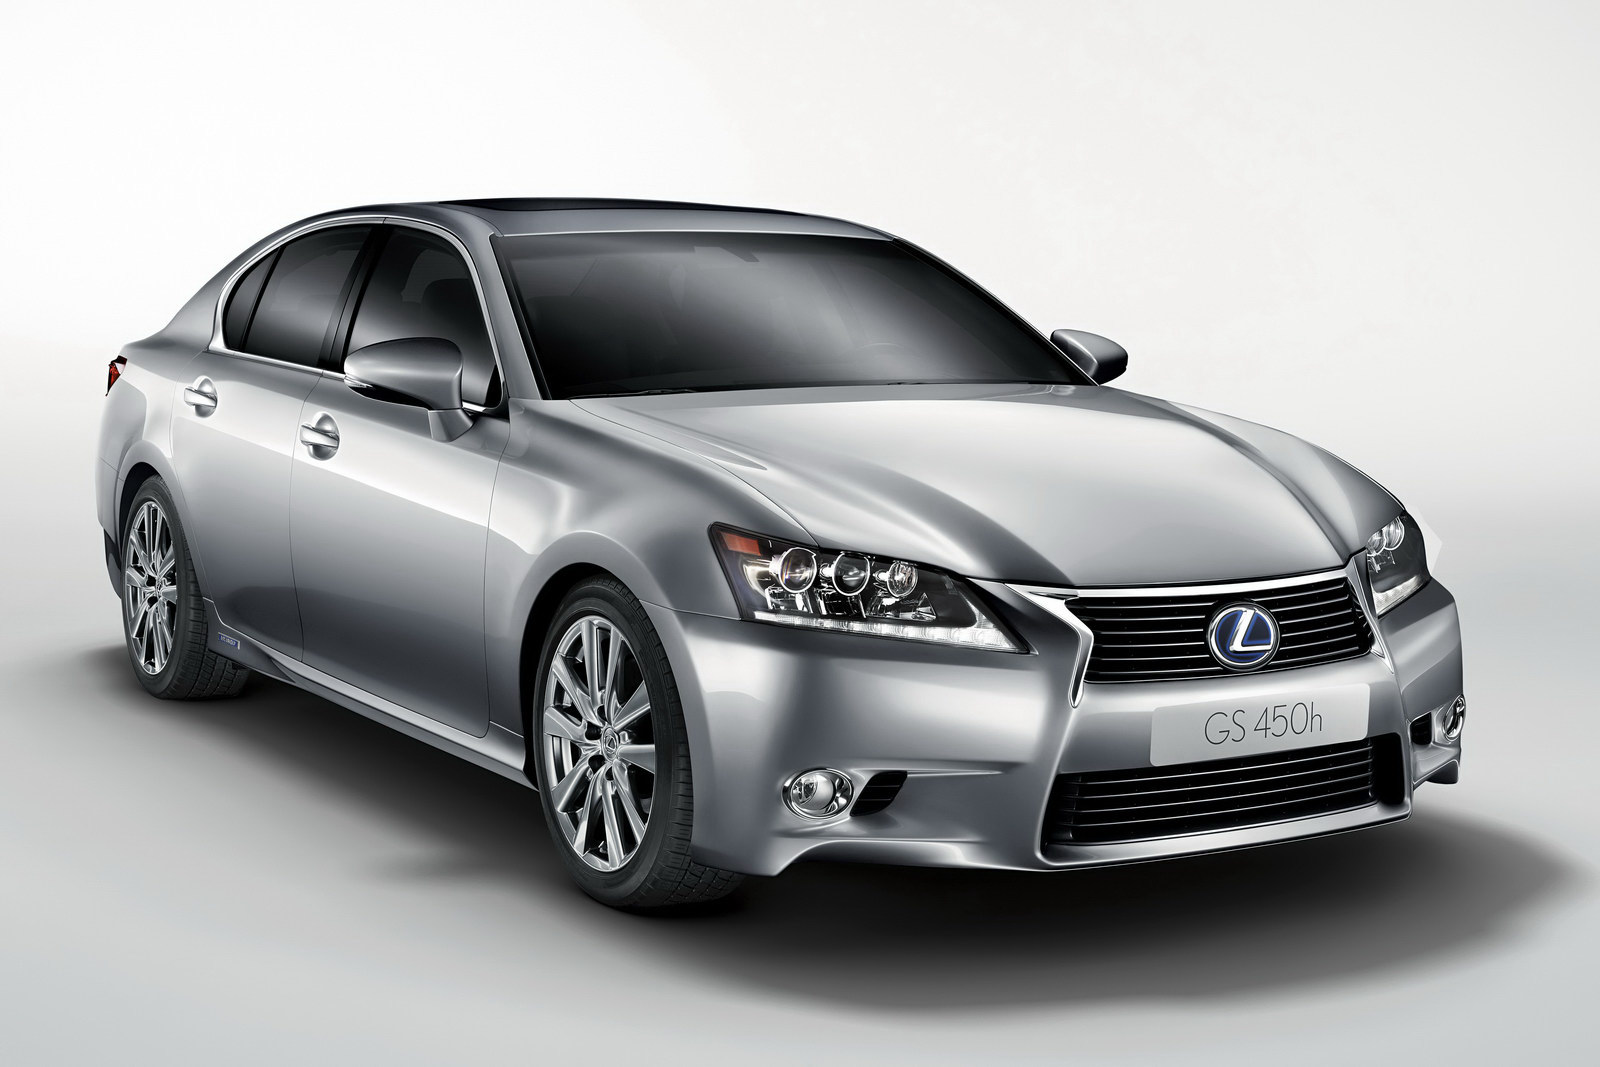 2013 lexus gs 450h officially revealed ahead of frankfurt. Black Bedroom Furniture Sets. Home Design Ideas